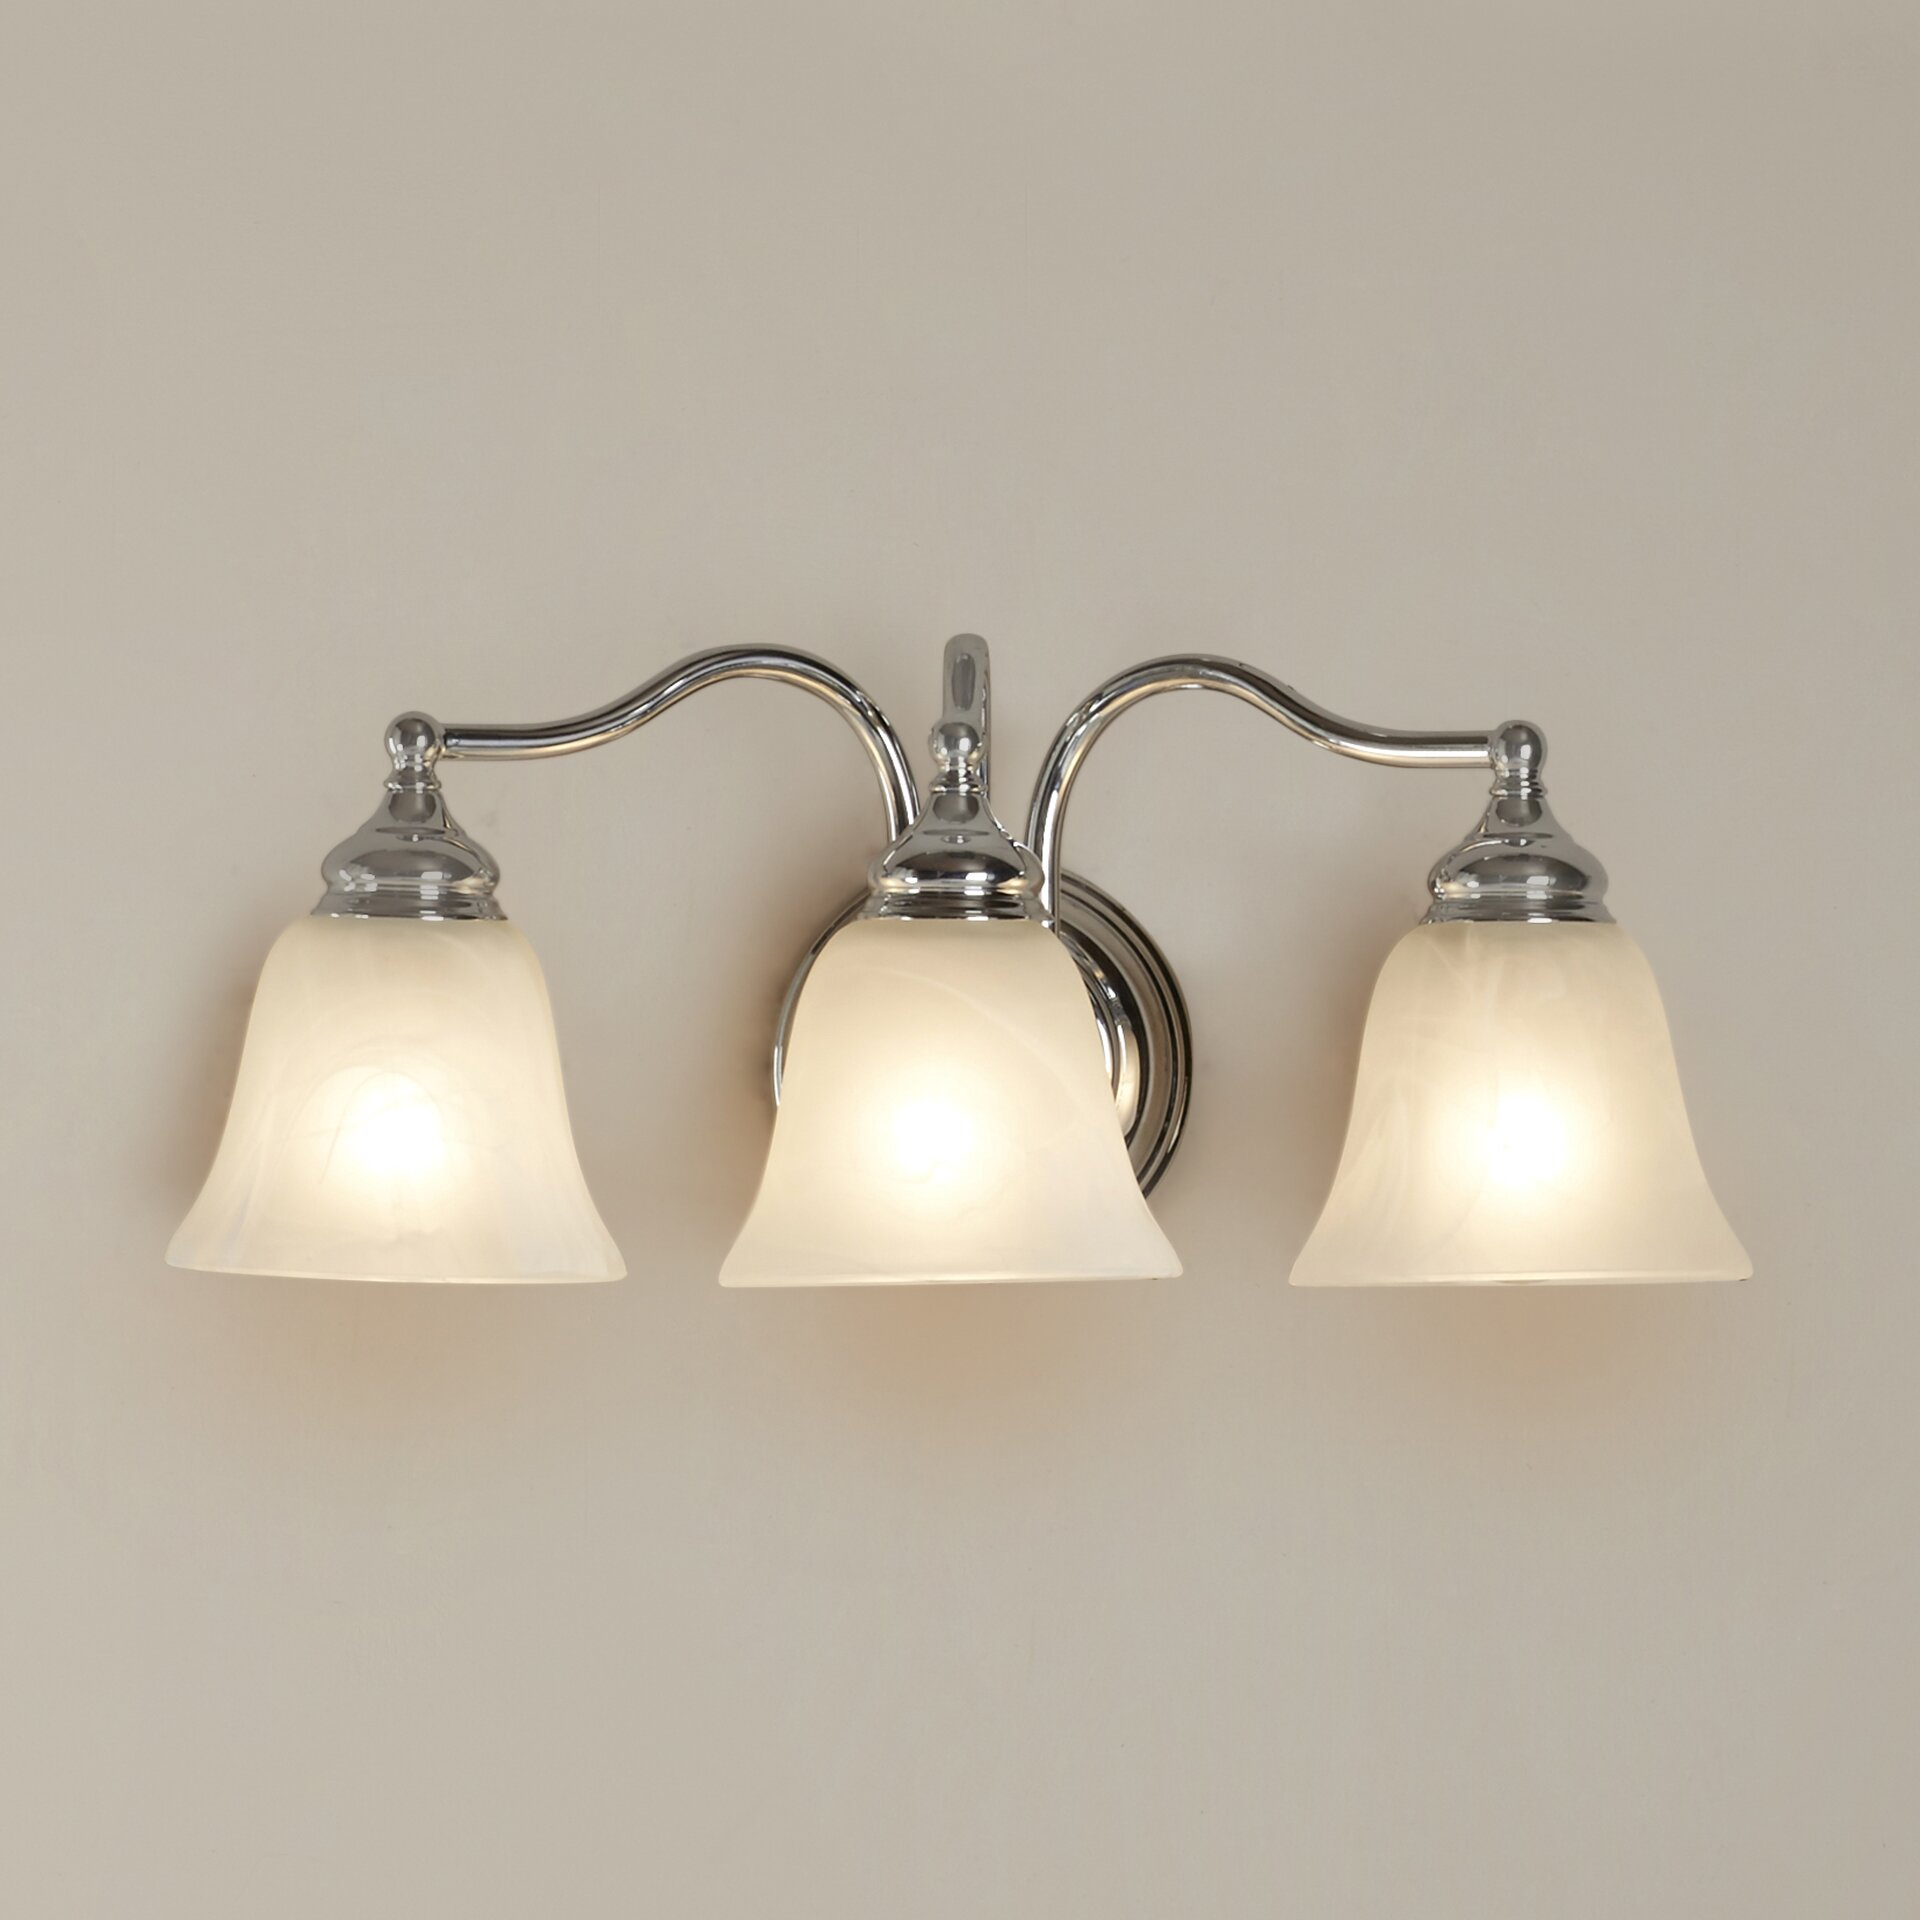 Alcott Hill Elys 3 Light Vanity Light & Reviews